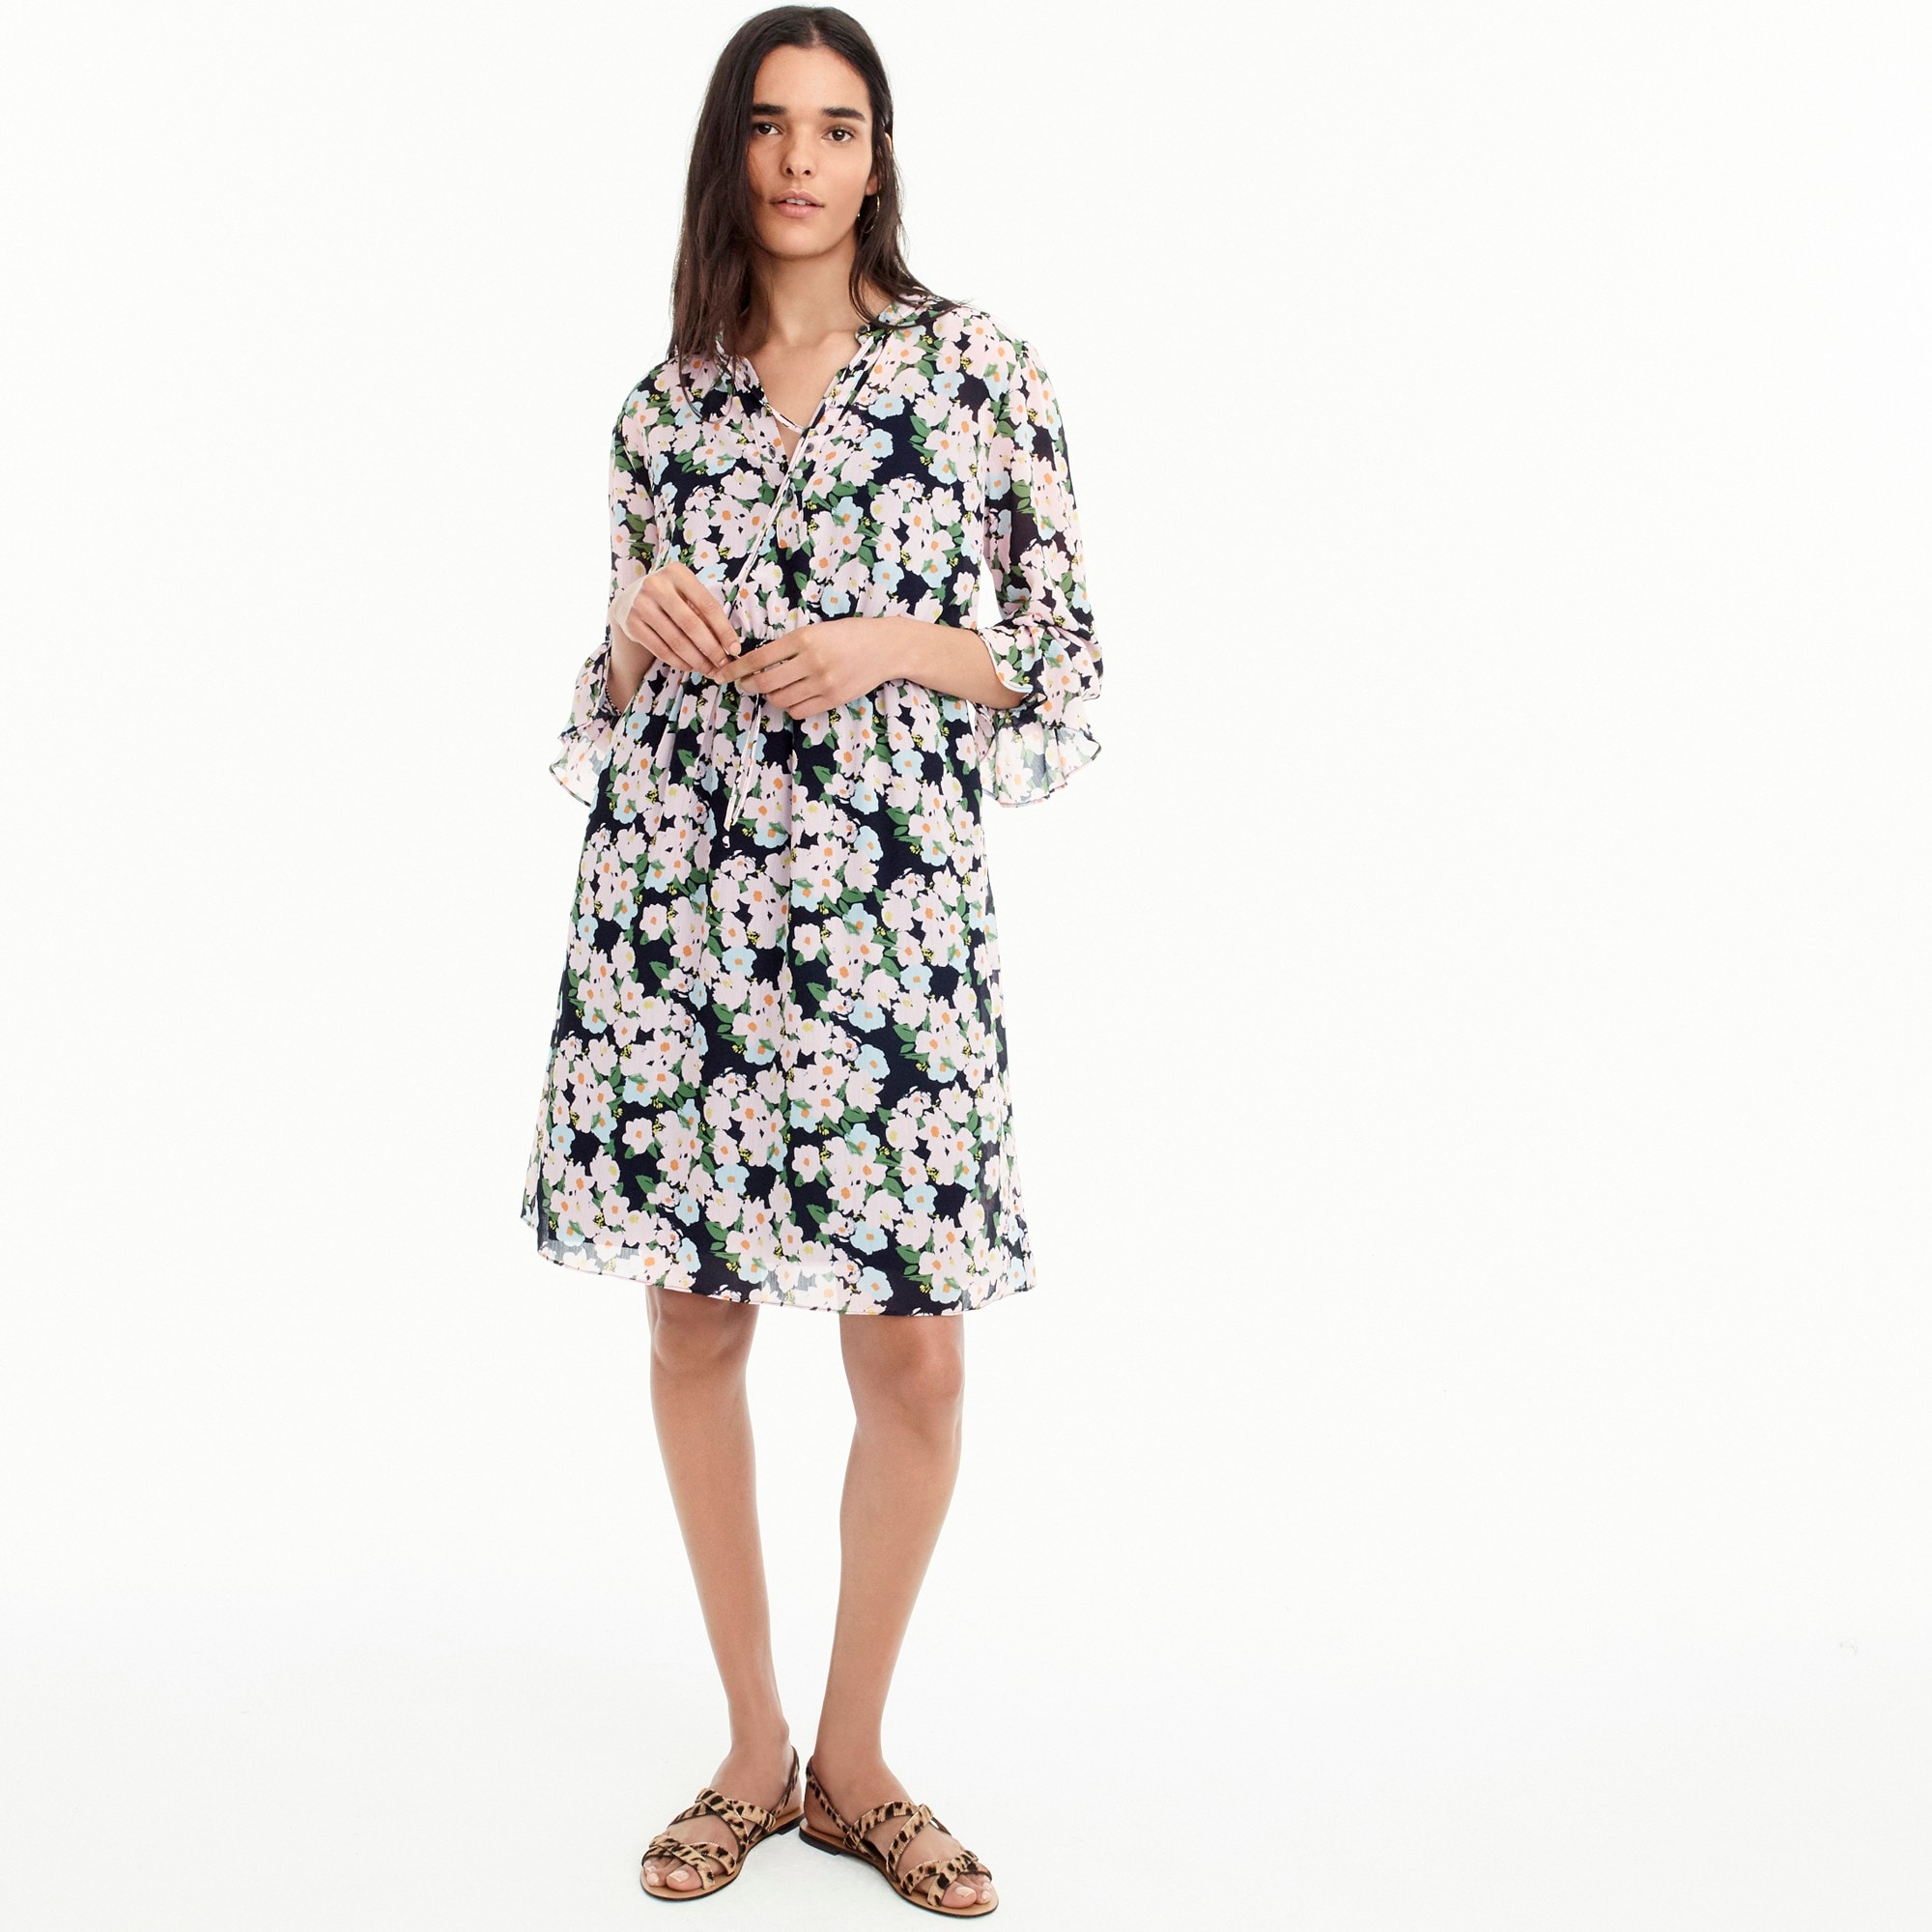 Image 2 for J.Crew Mercantile drapey tie-front dress in French floral